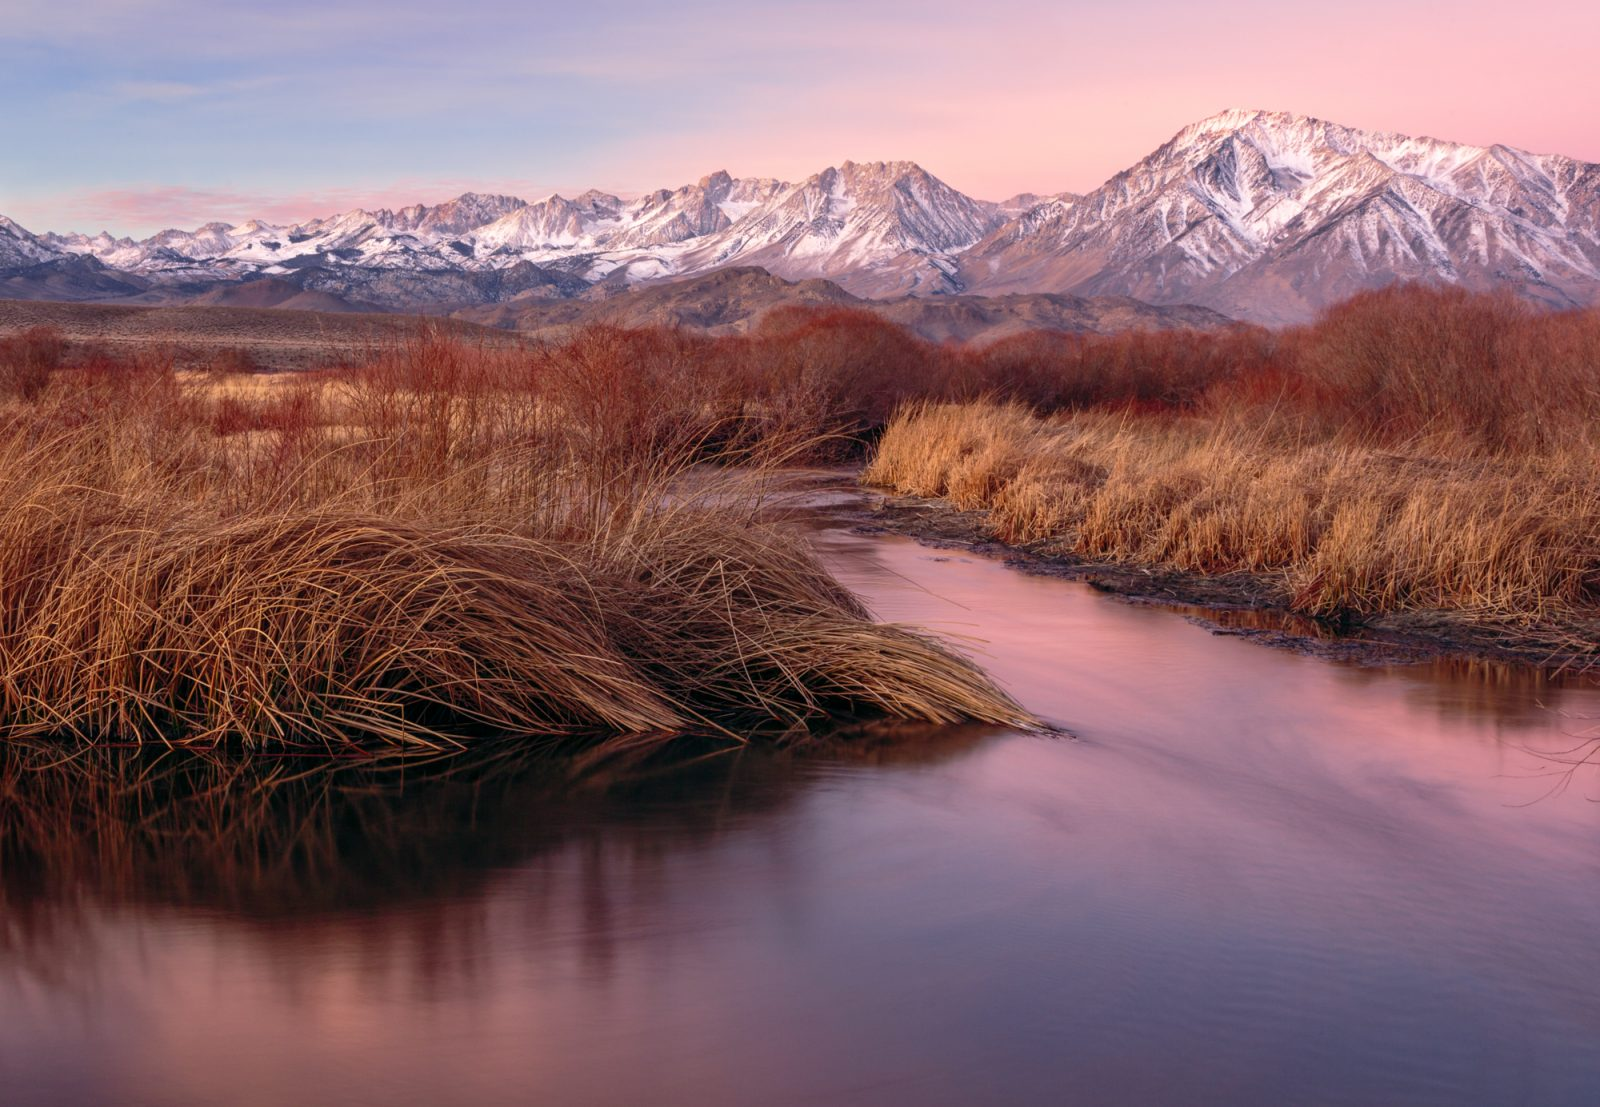 Sunrise on the Owens River